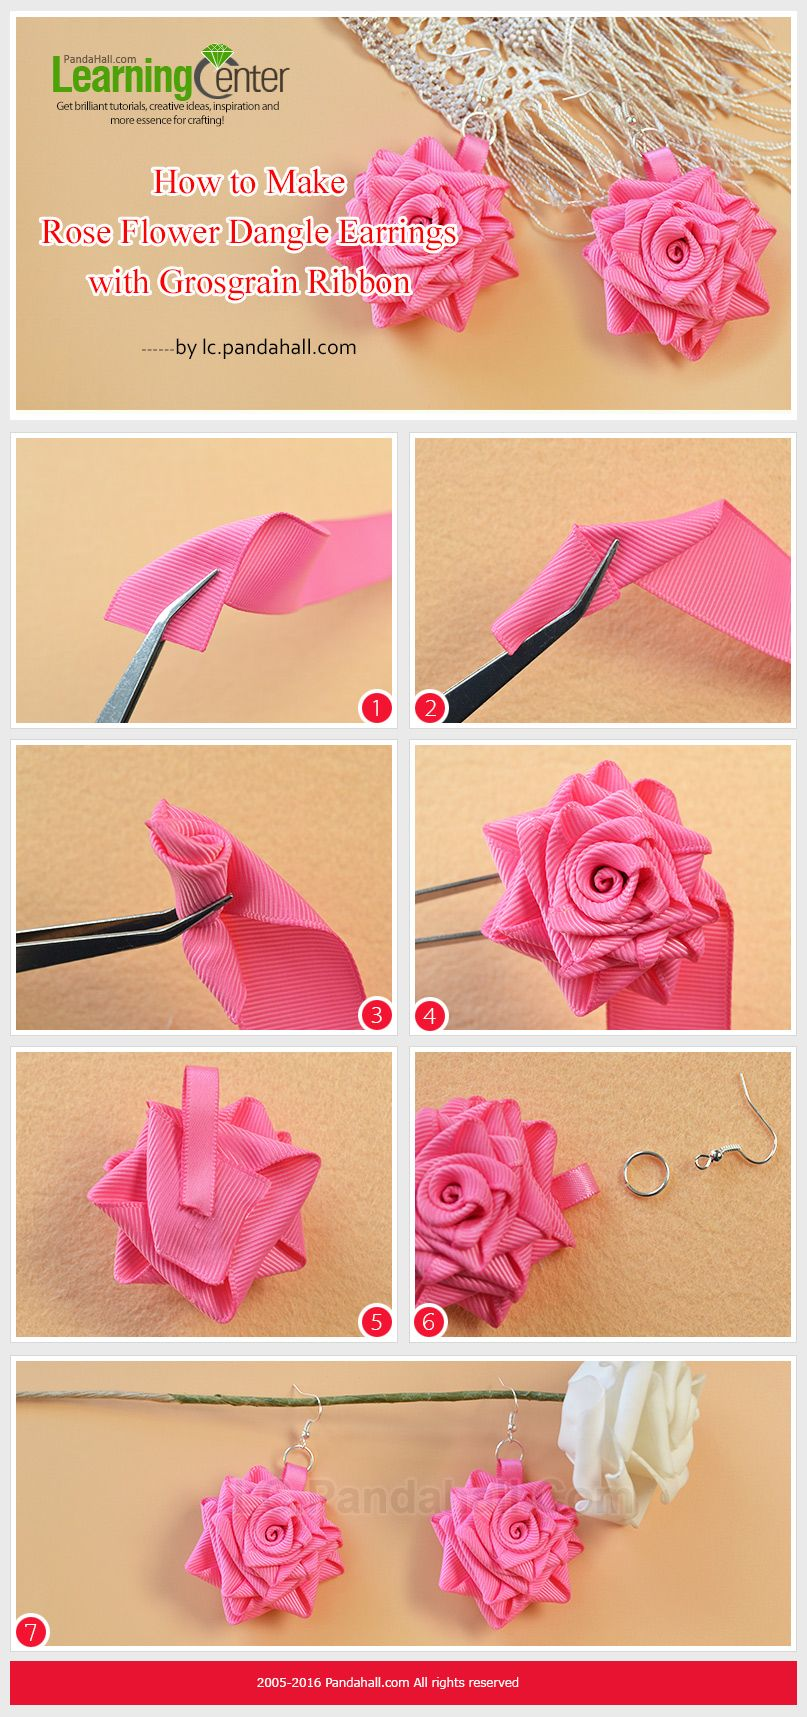 Tutorial on How to Make Rose Flower Dangle Earrings with Grosgrain Ribbon from LC.Pandahall.com